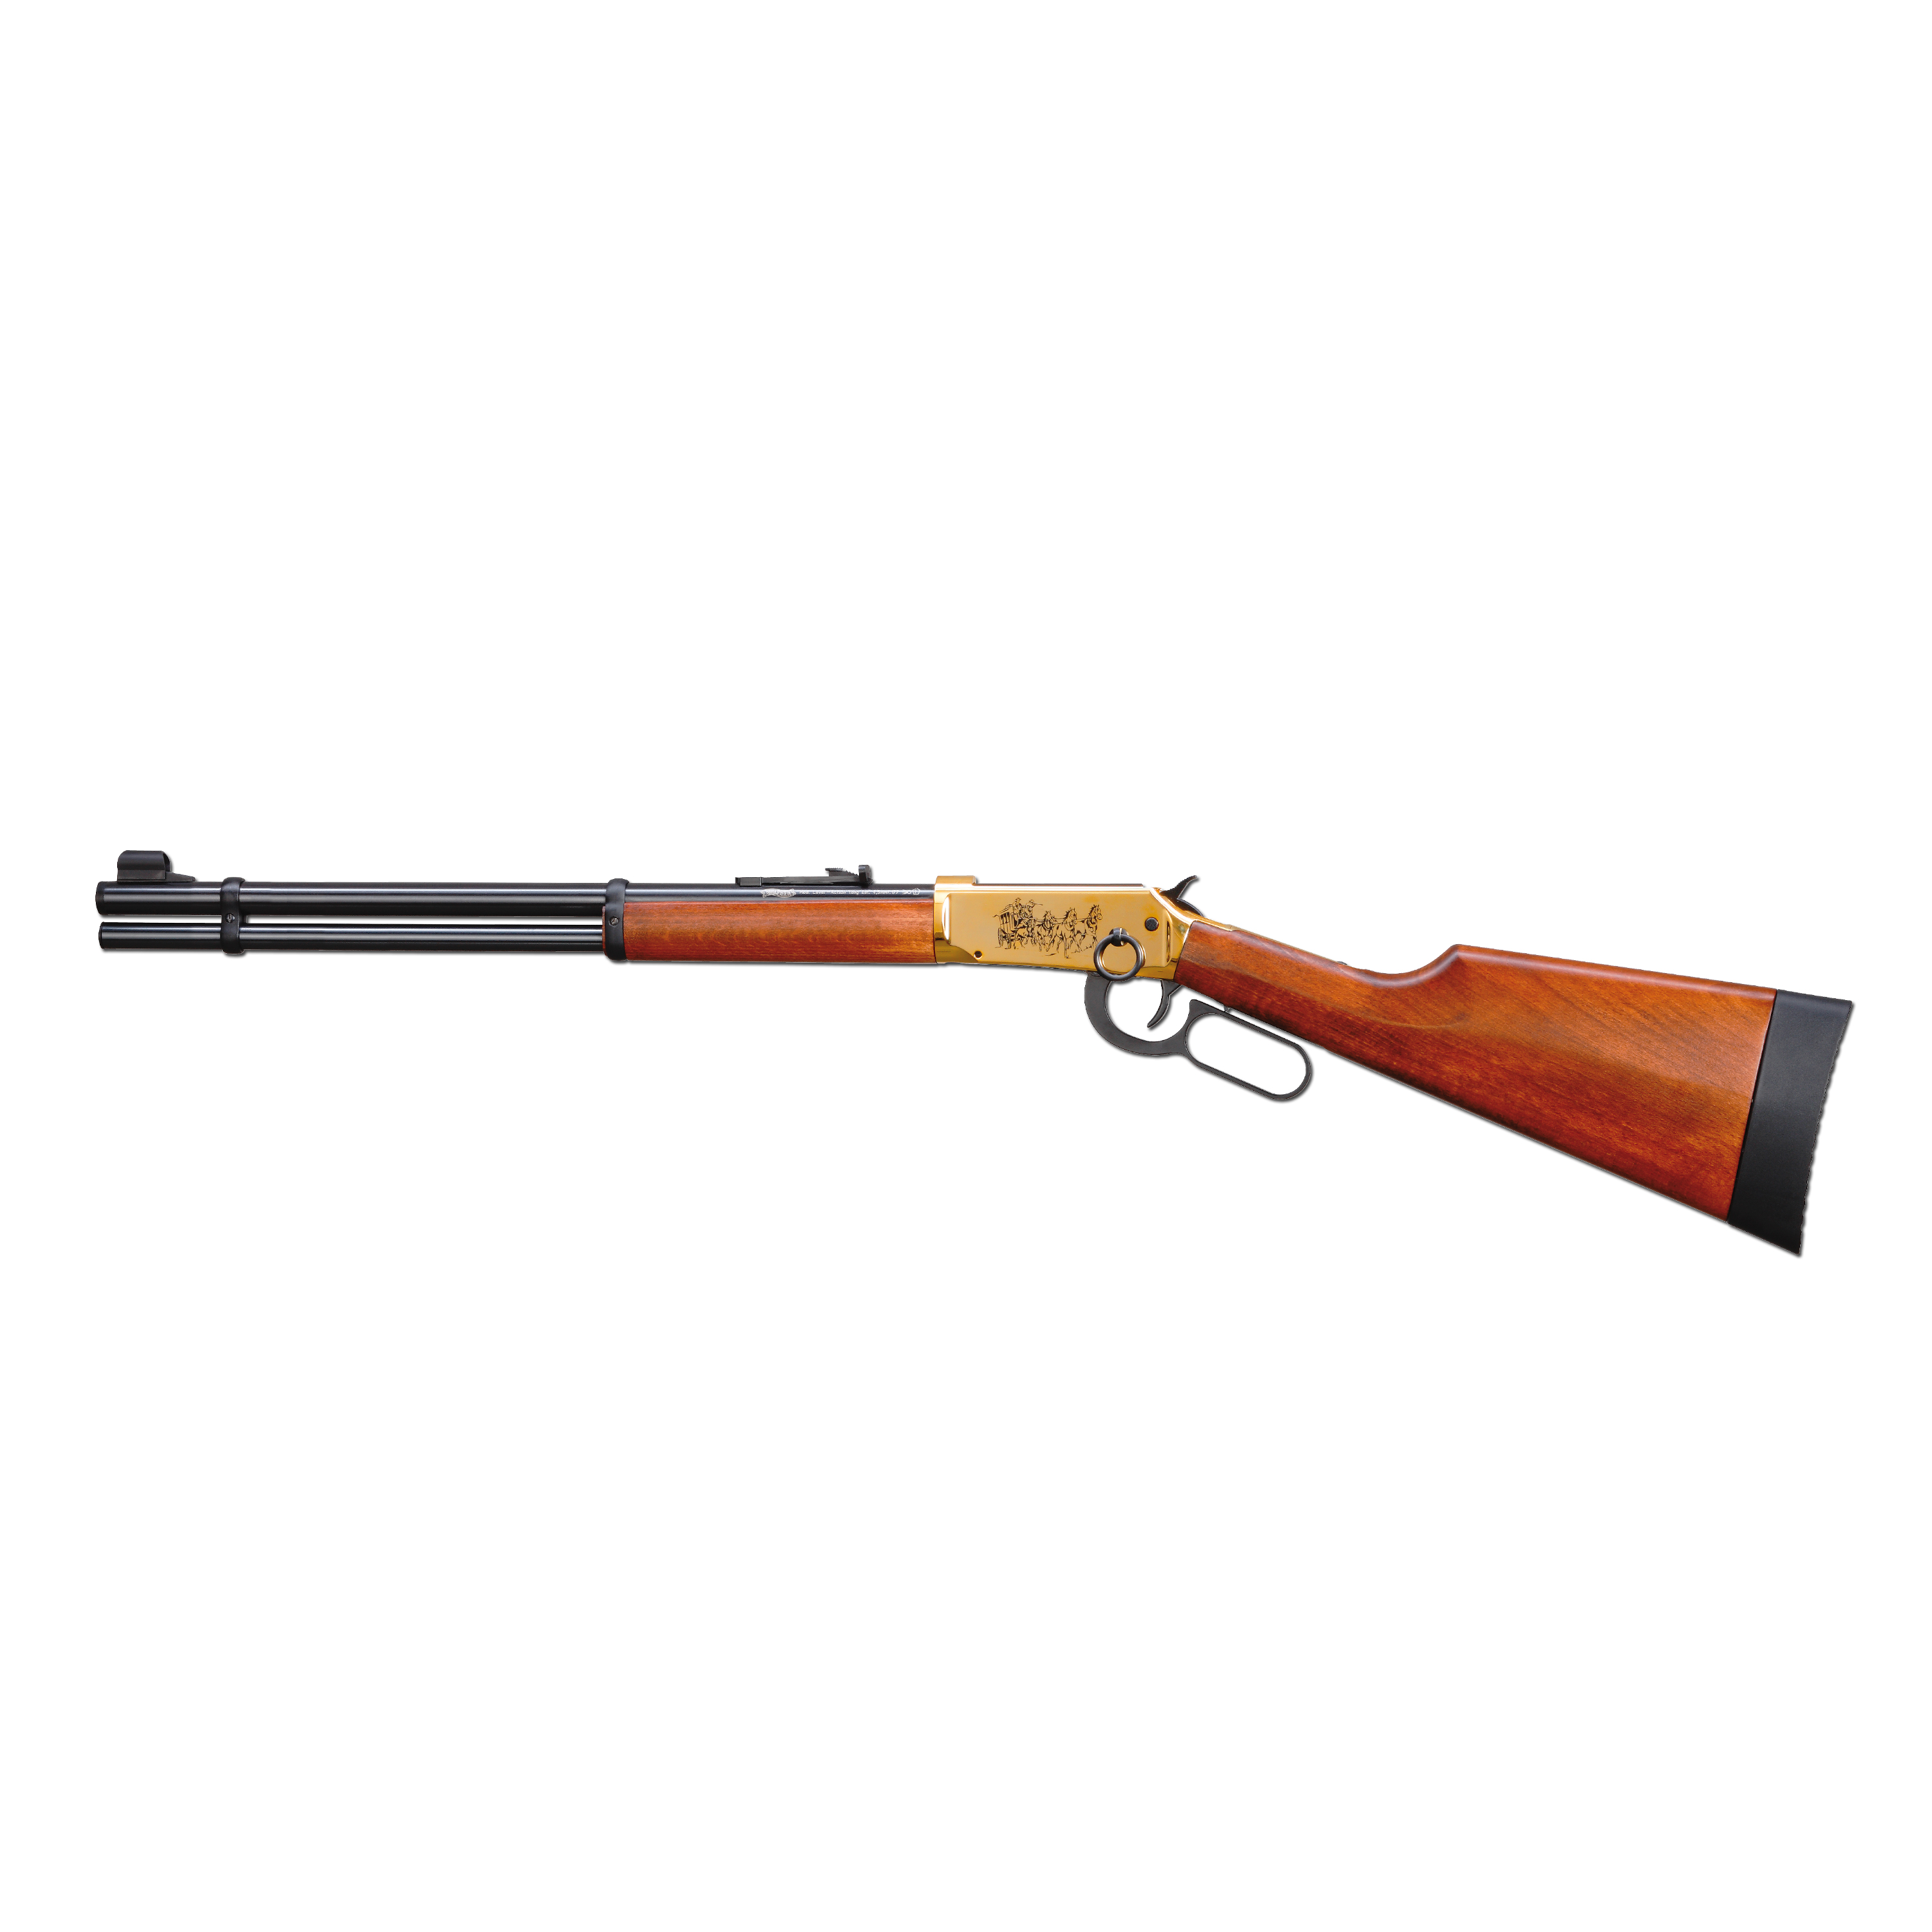 Carabine Walther Lever Action bruni or Wells Fargo